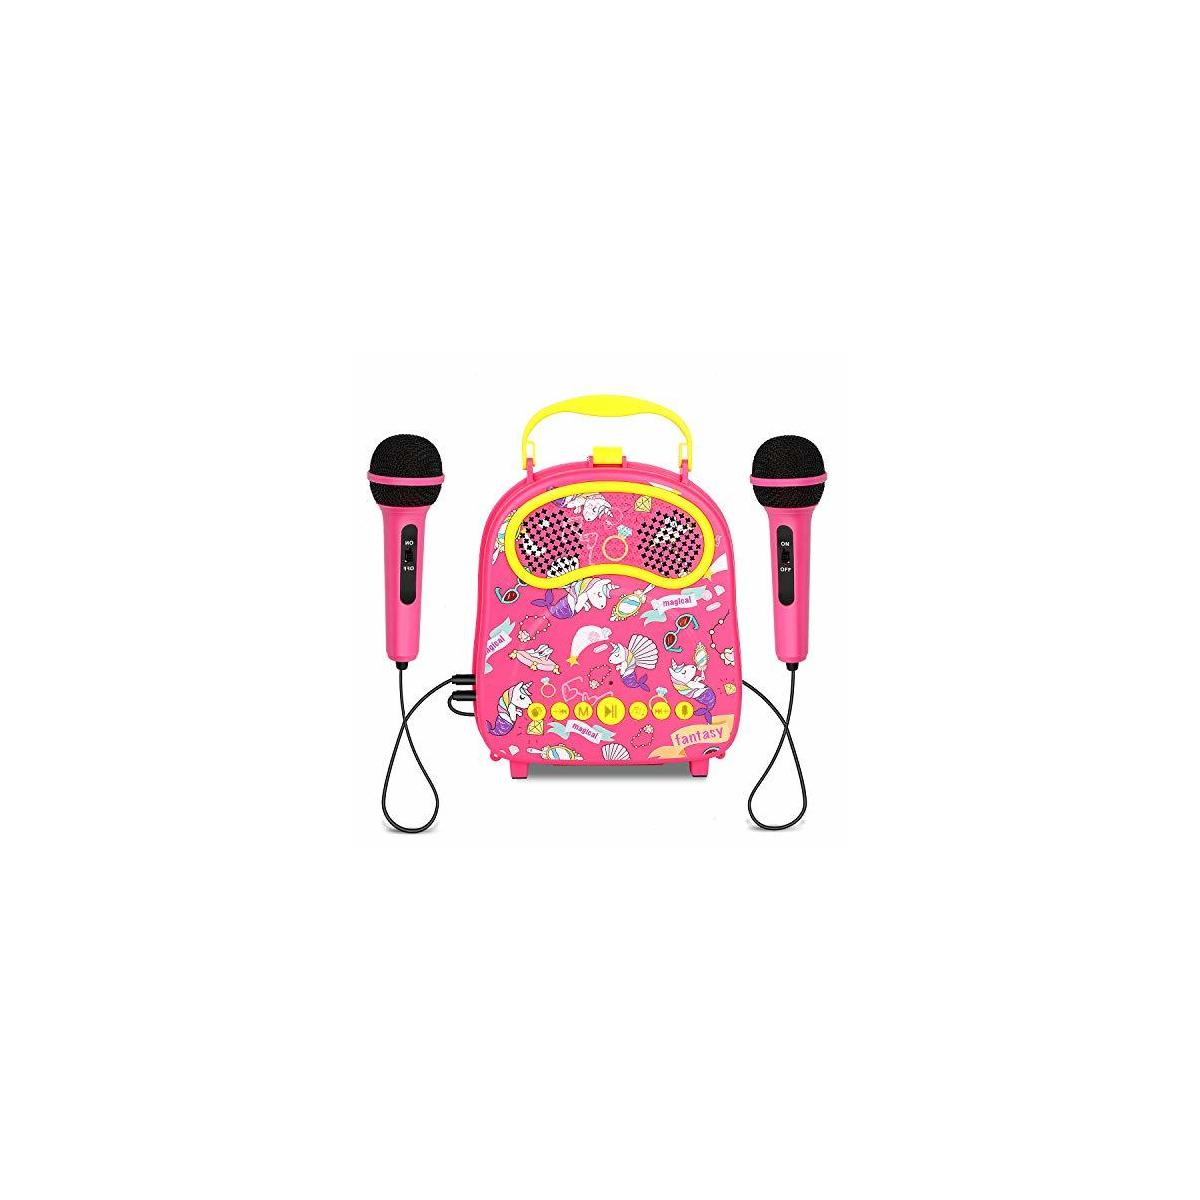 Kids Karaoke Machine 2 Microphones Wireless Karaoke Microphone Portable Carry Bag Includes Voice Changer, Applause and Accompaniment